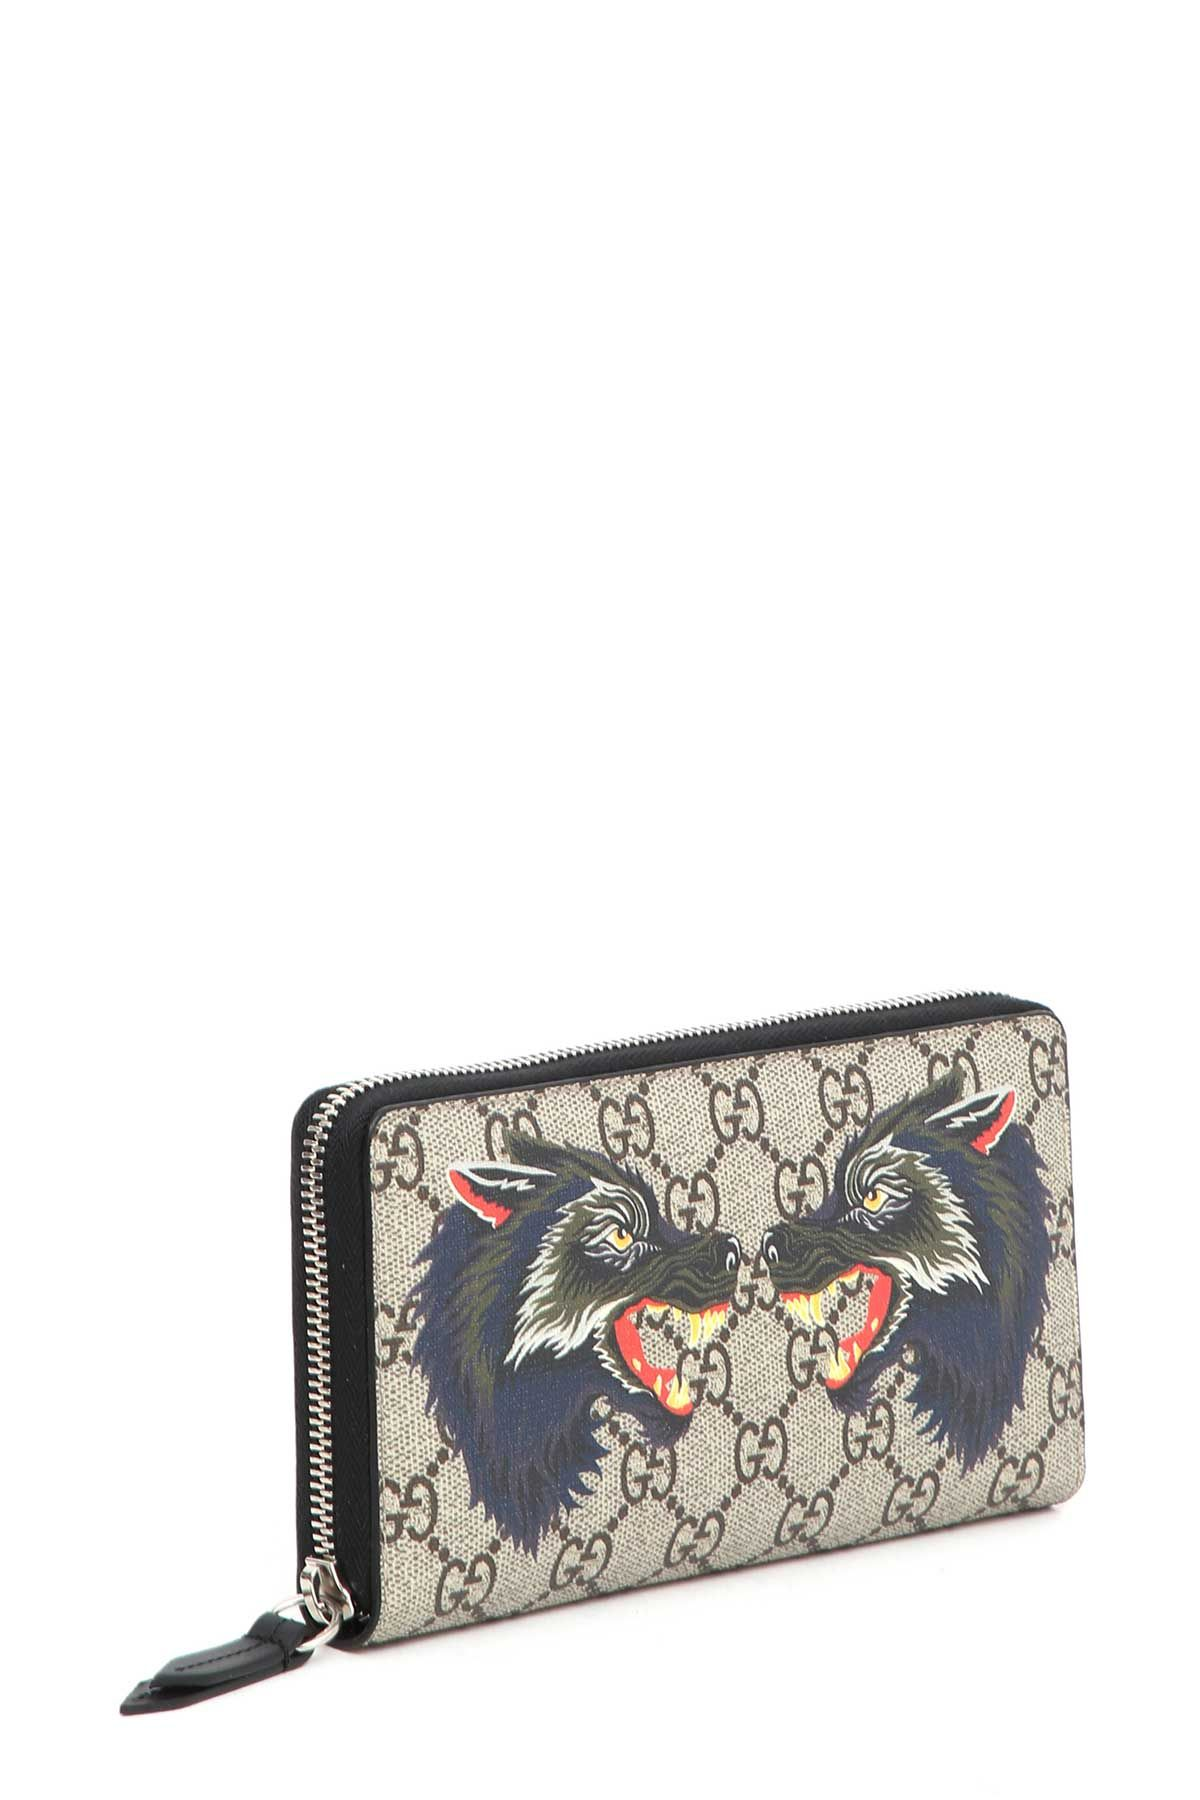 723104a39647 GUCCI WALLET WITH WOLF PRINT. #gucci # | Gucci Men | Gucci wallet ...